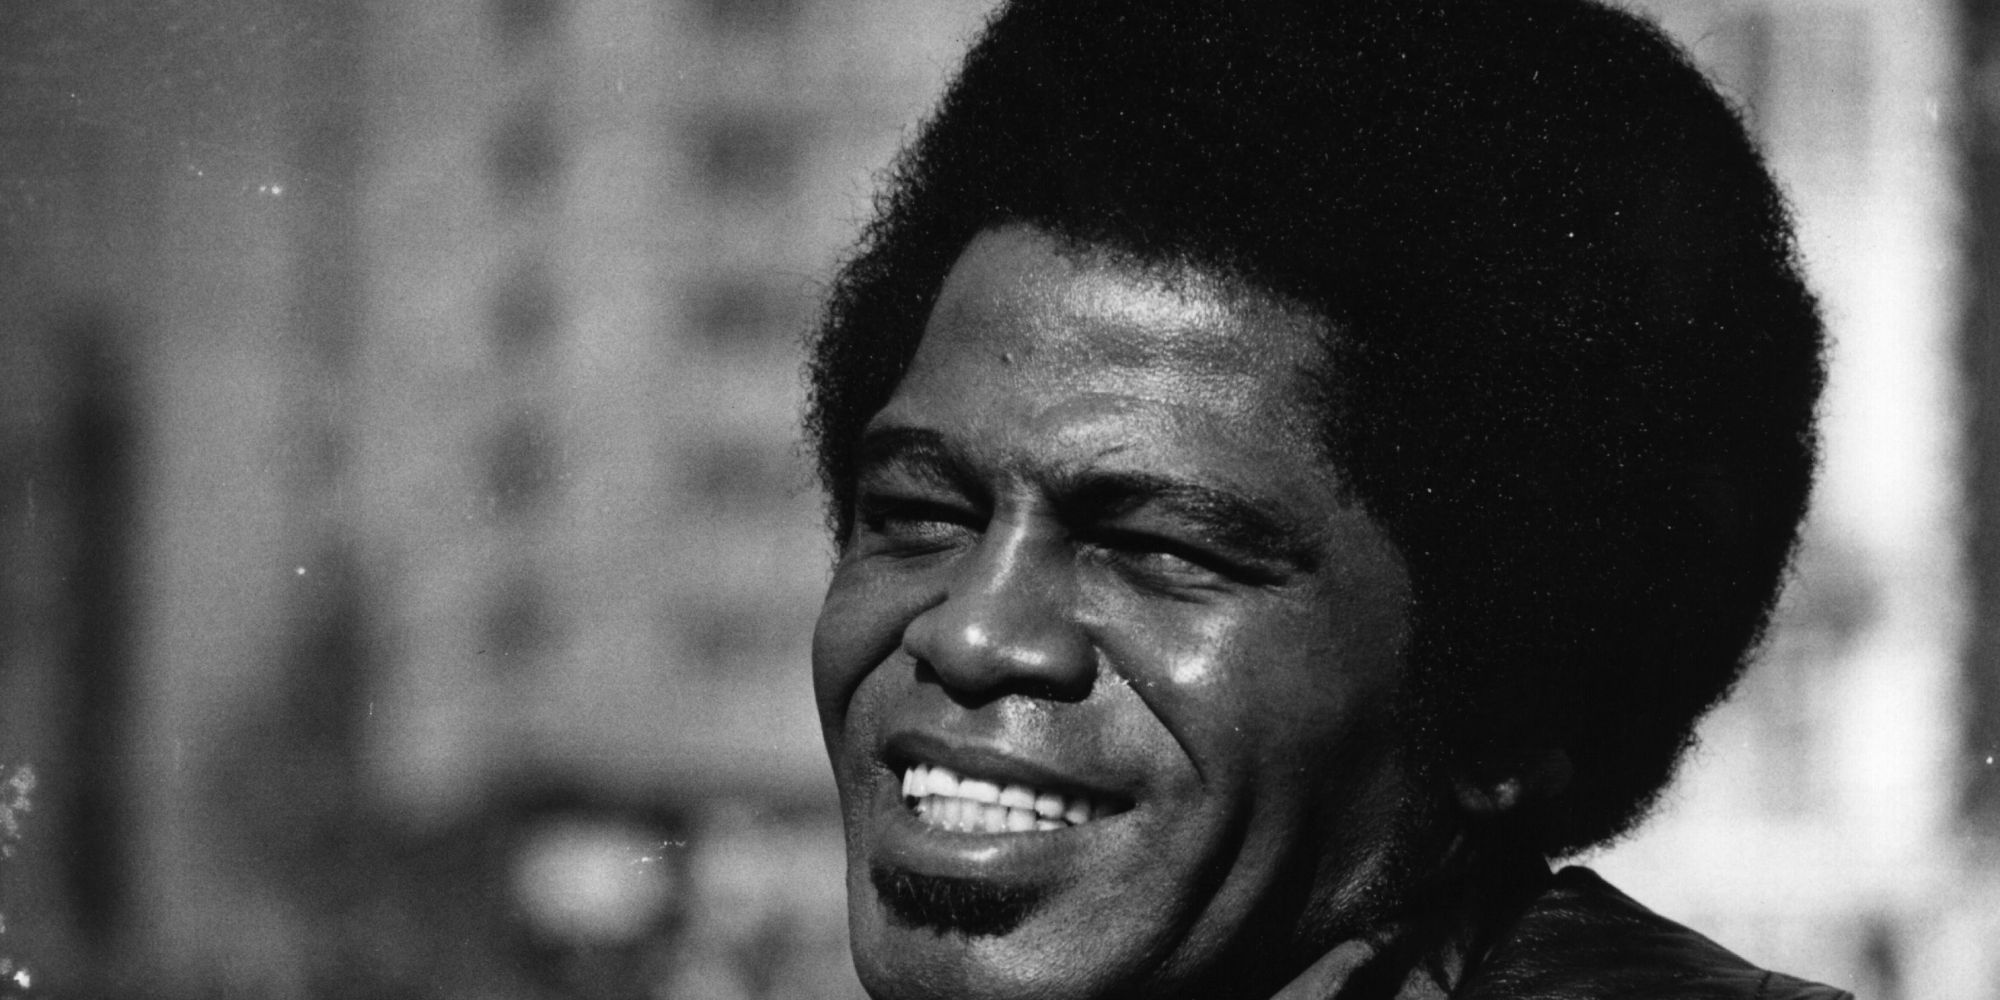 10th March 1971: Legendary soul-funk singer, songwriter James Brown. (Photo by Evening Standard/Getty Images)